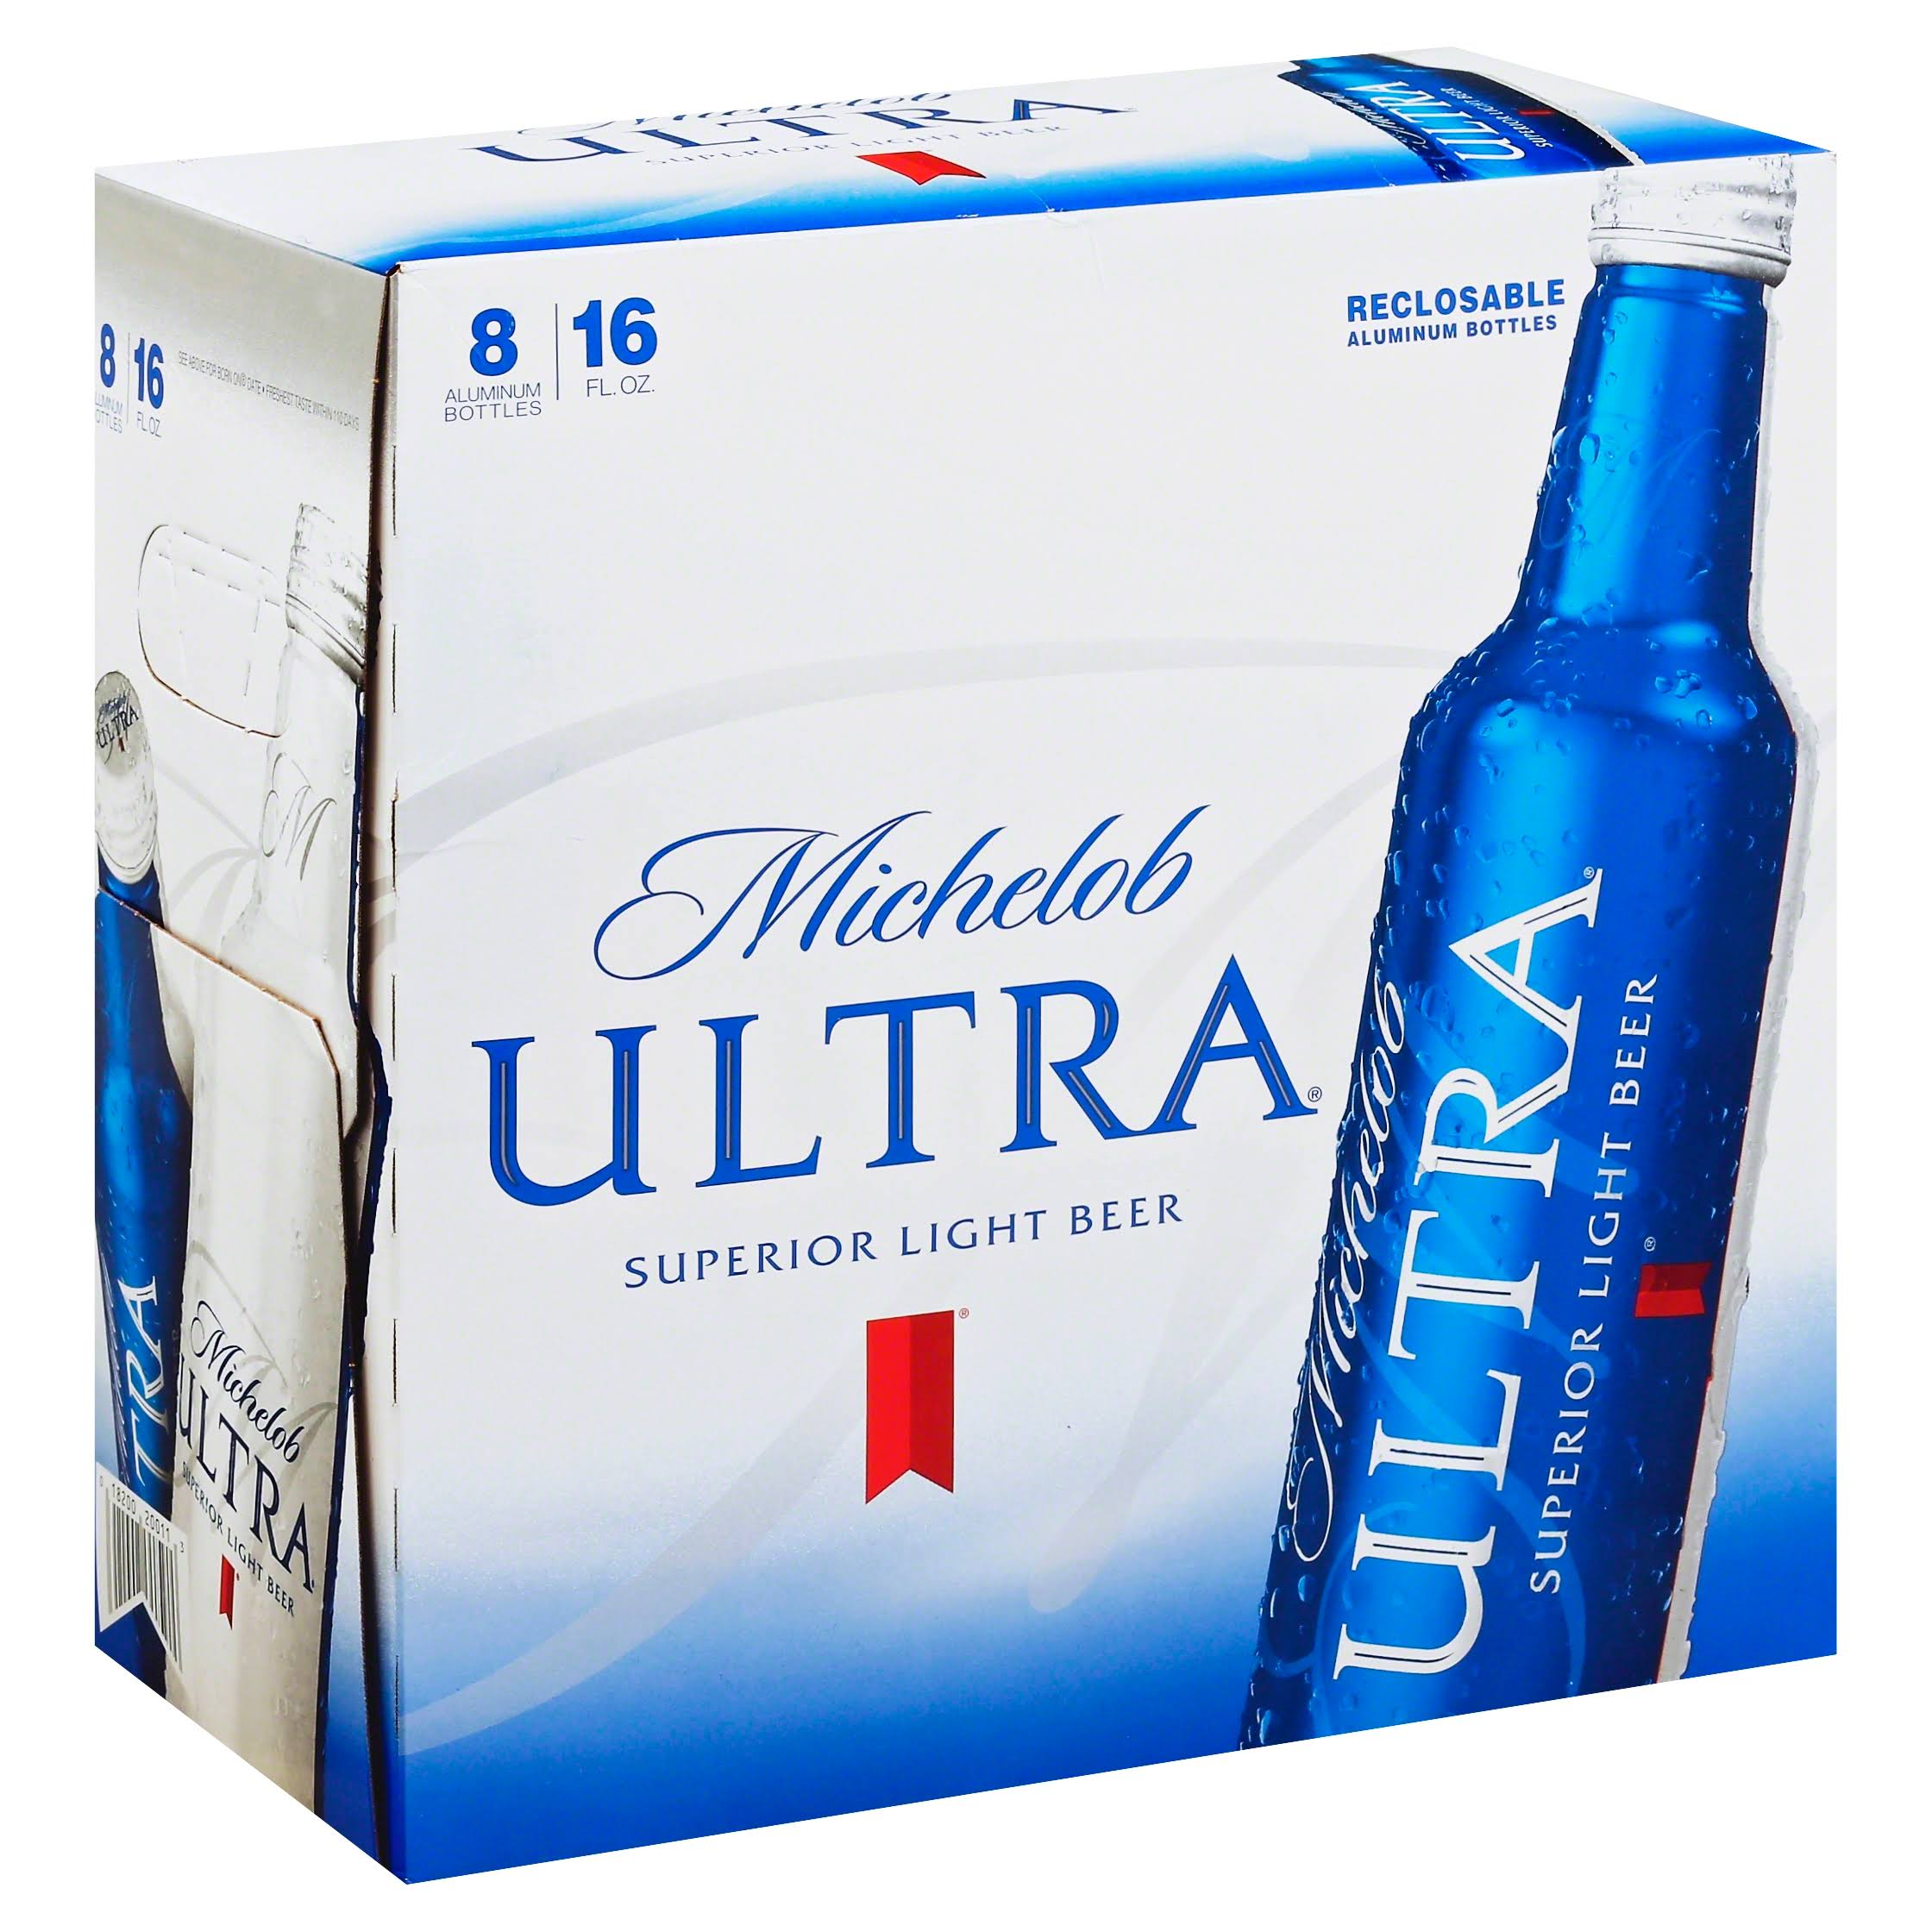 Michelob Ultra Superior Light Beer - 16 fl oz, x8